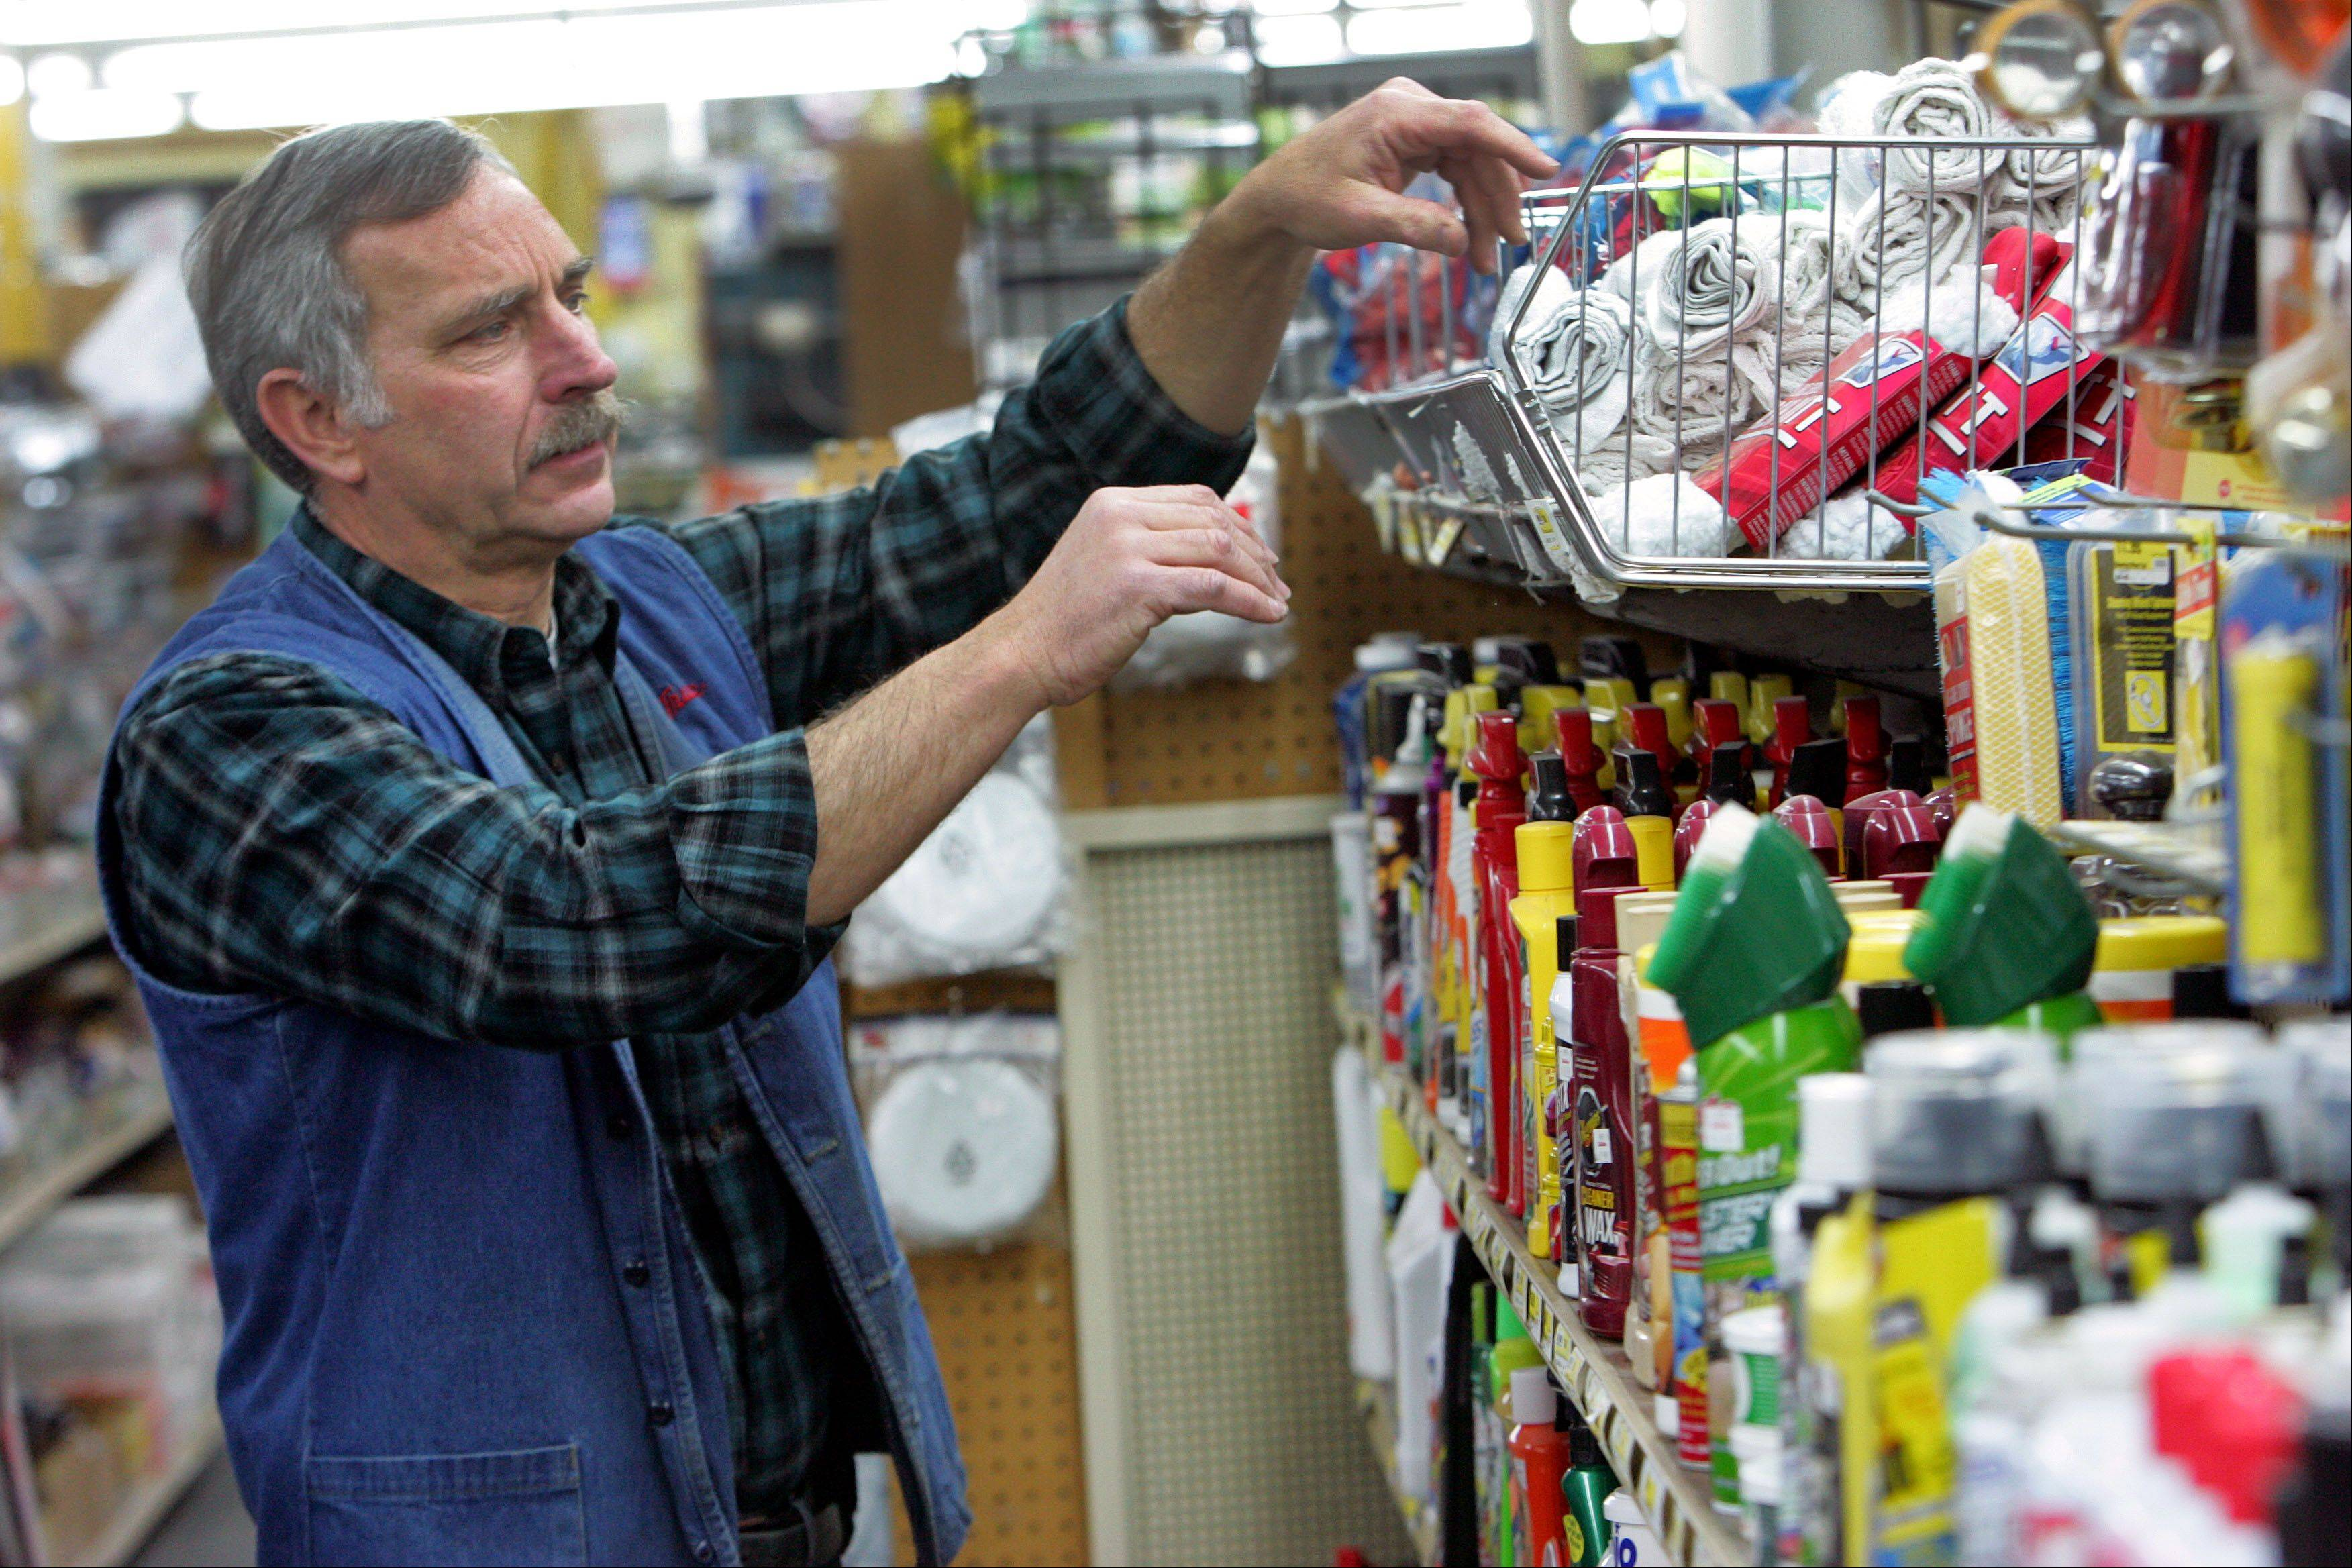 Ed LeJeune, owner of the Libertyville True Value, has put the business up for sale on eBay and Craigslist. The family moved to Libertyville from Chicago in 1967, when his father, Gene, bought the business.